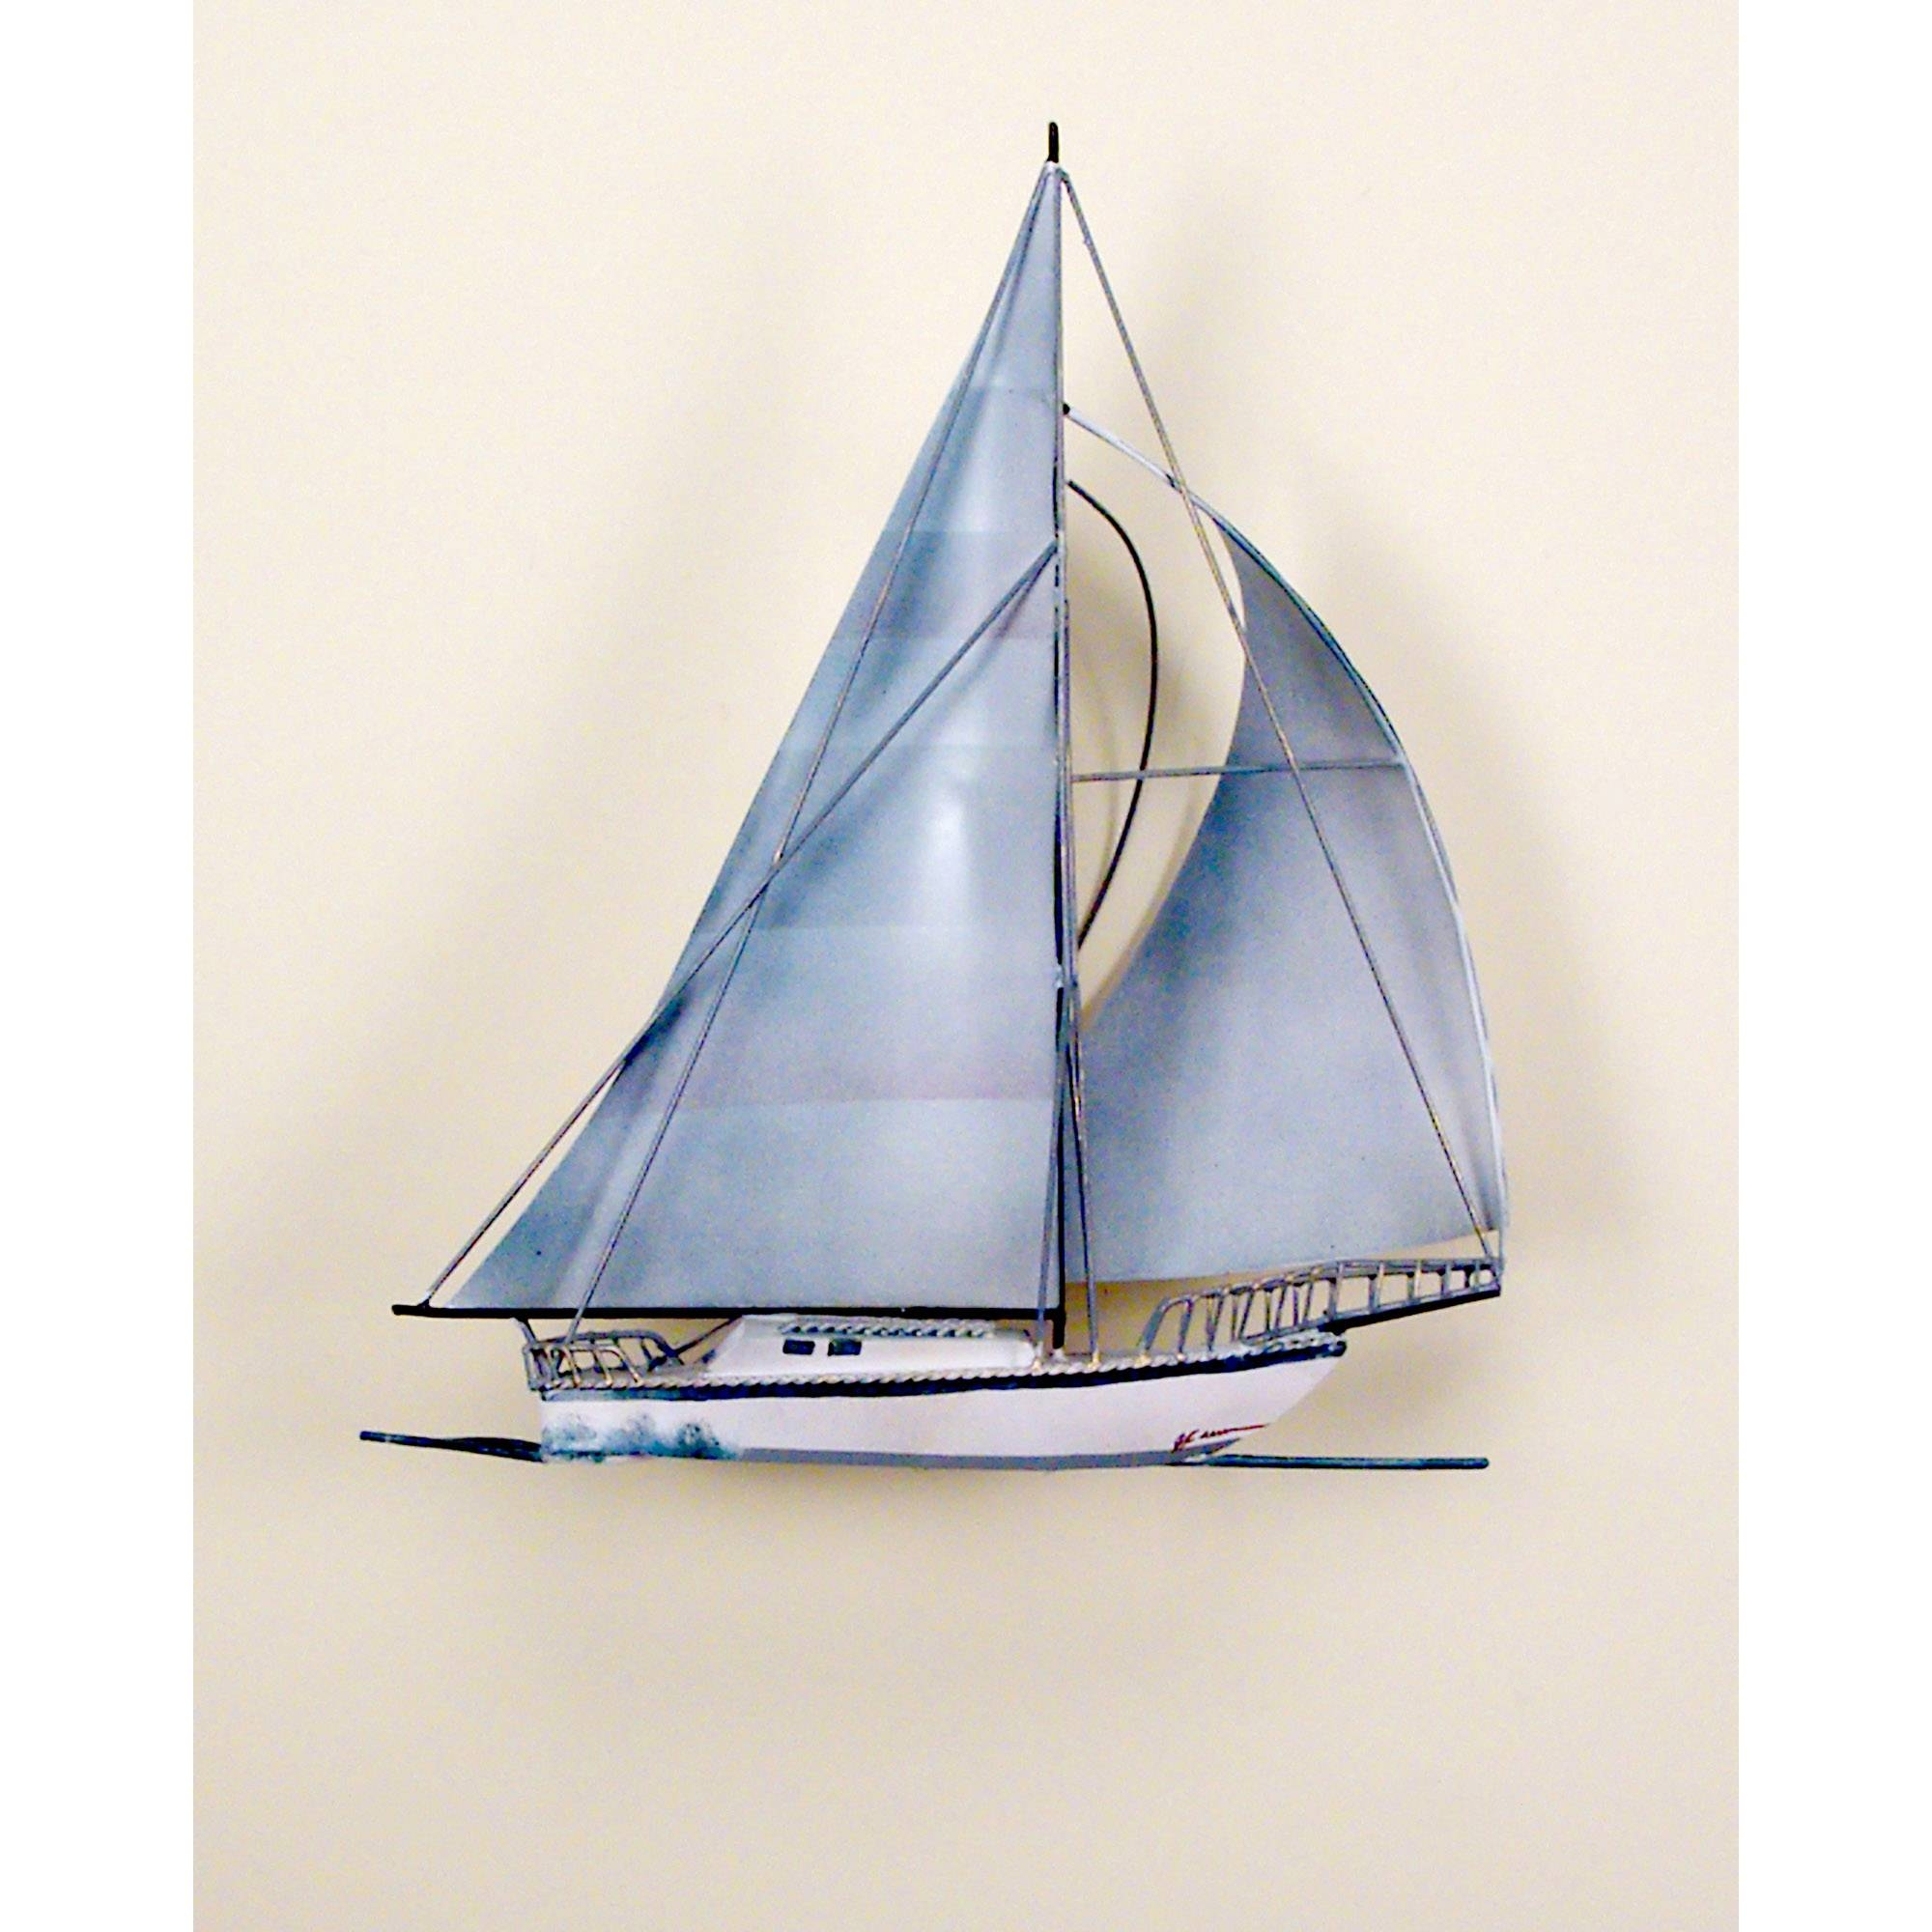 Windjamer Sailboat, Single, Ocean, Boat, Nautical, Sailing Intended For Most Current Metal Wall Art Ships (View 20 of 20)